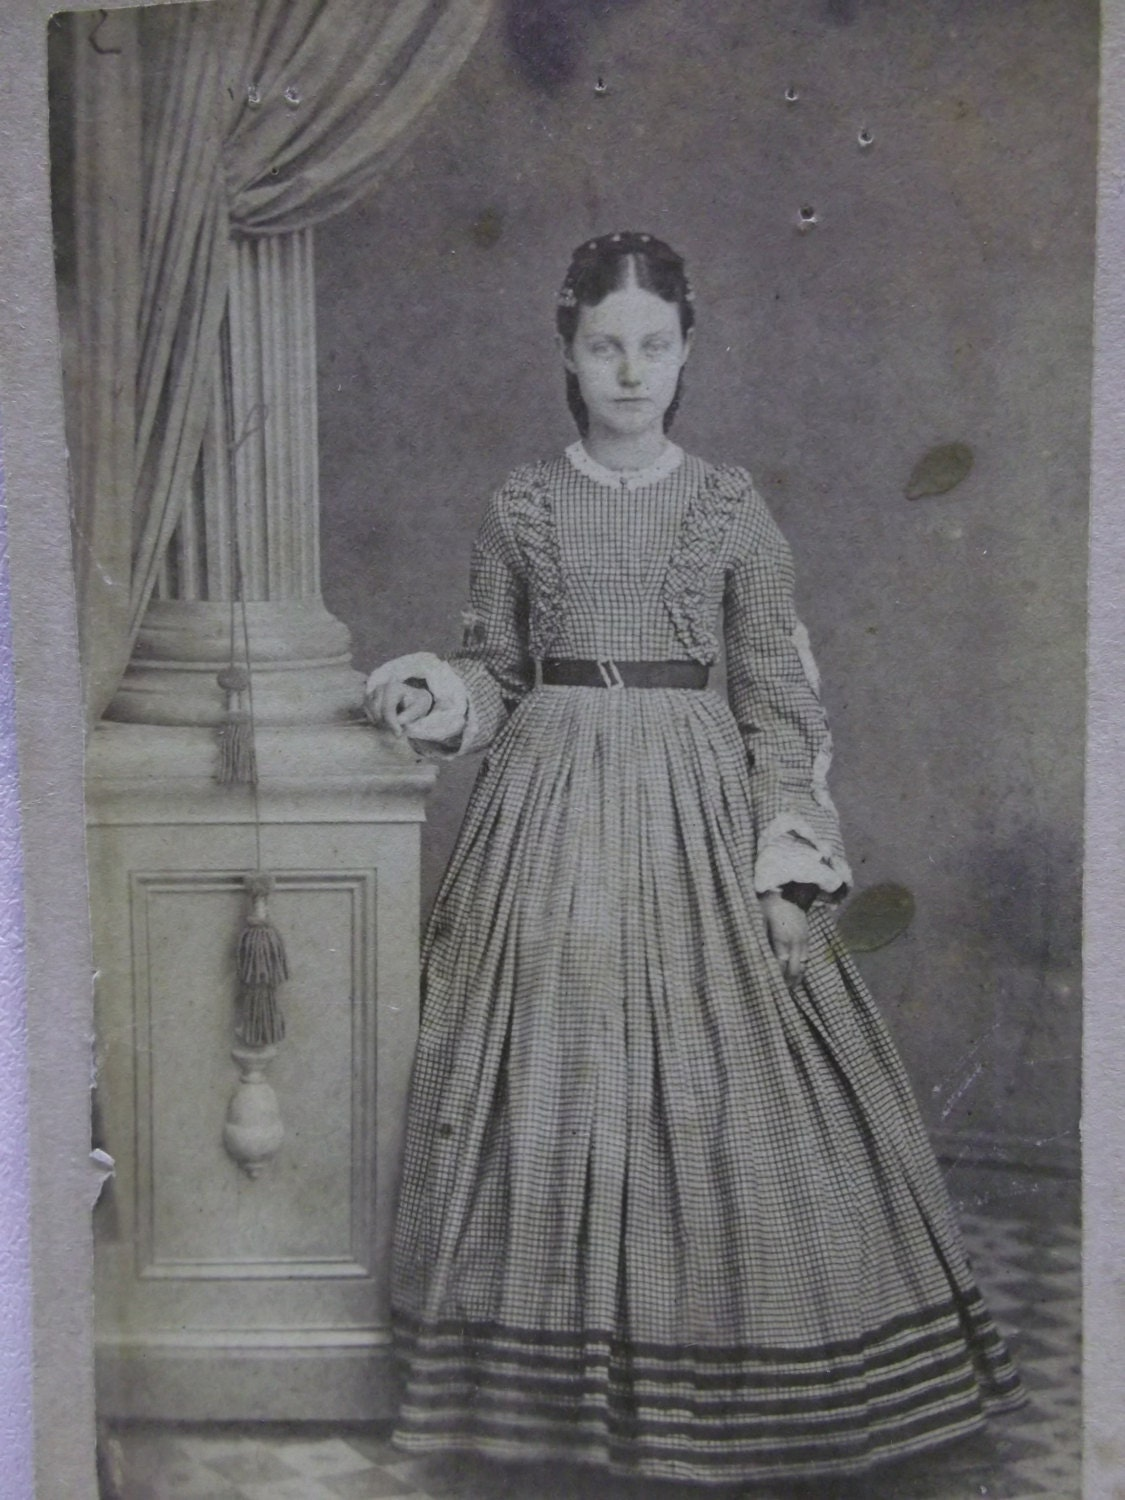 Young Teen Girl In Wonderful 1800's Fashion By Debsatticfinds